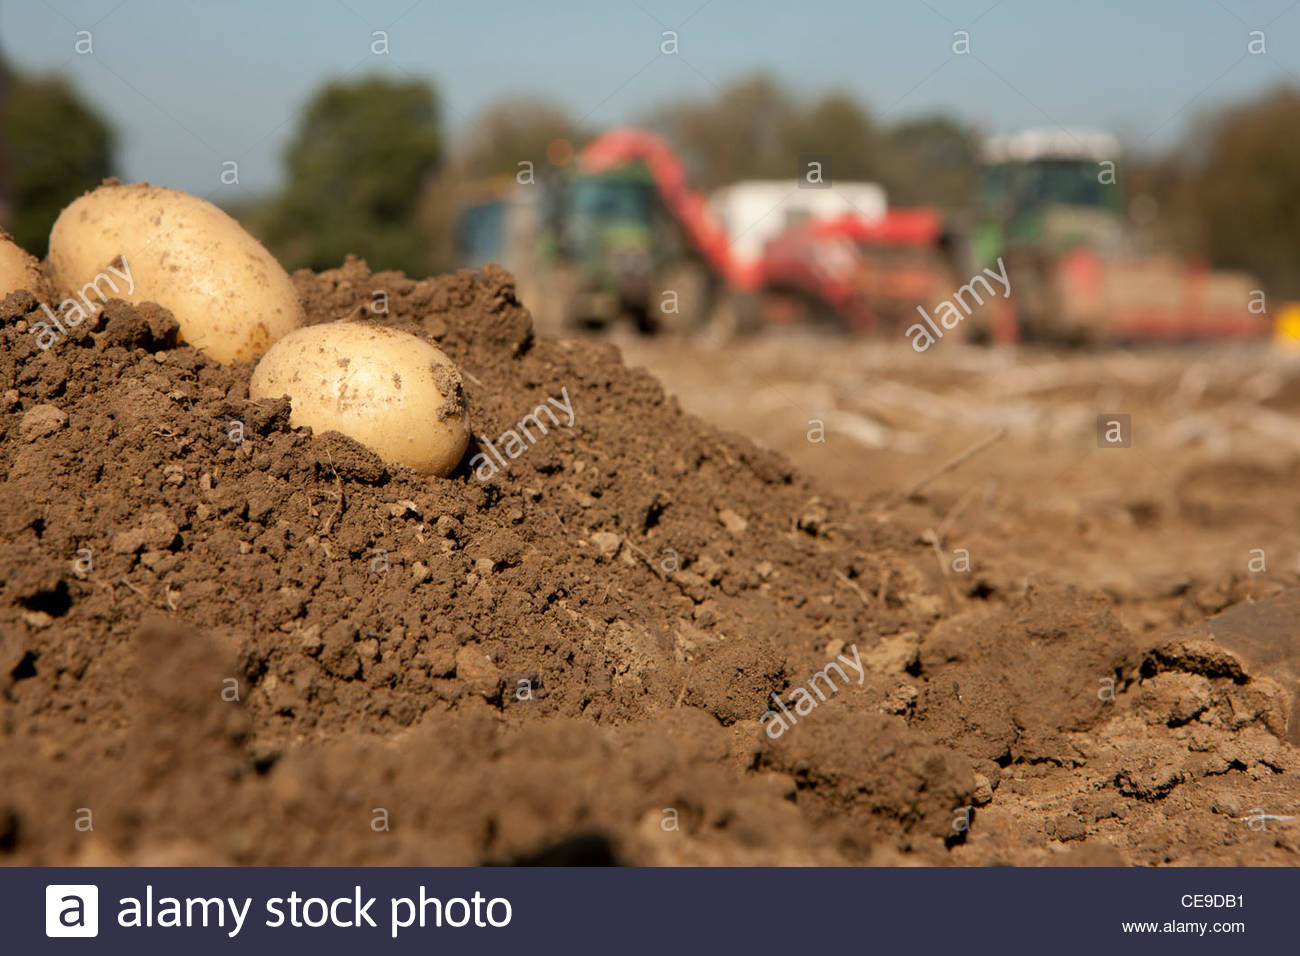 Close up of potatoes on mound of dirt in sunny, rural field with tractors in background - Stock Image